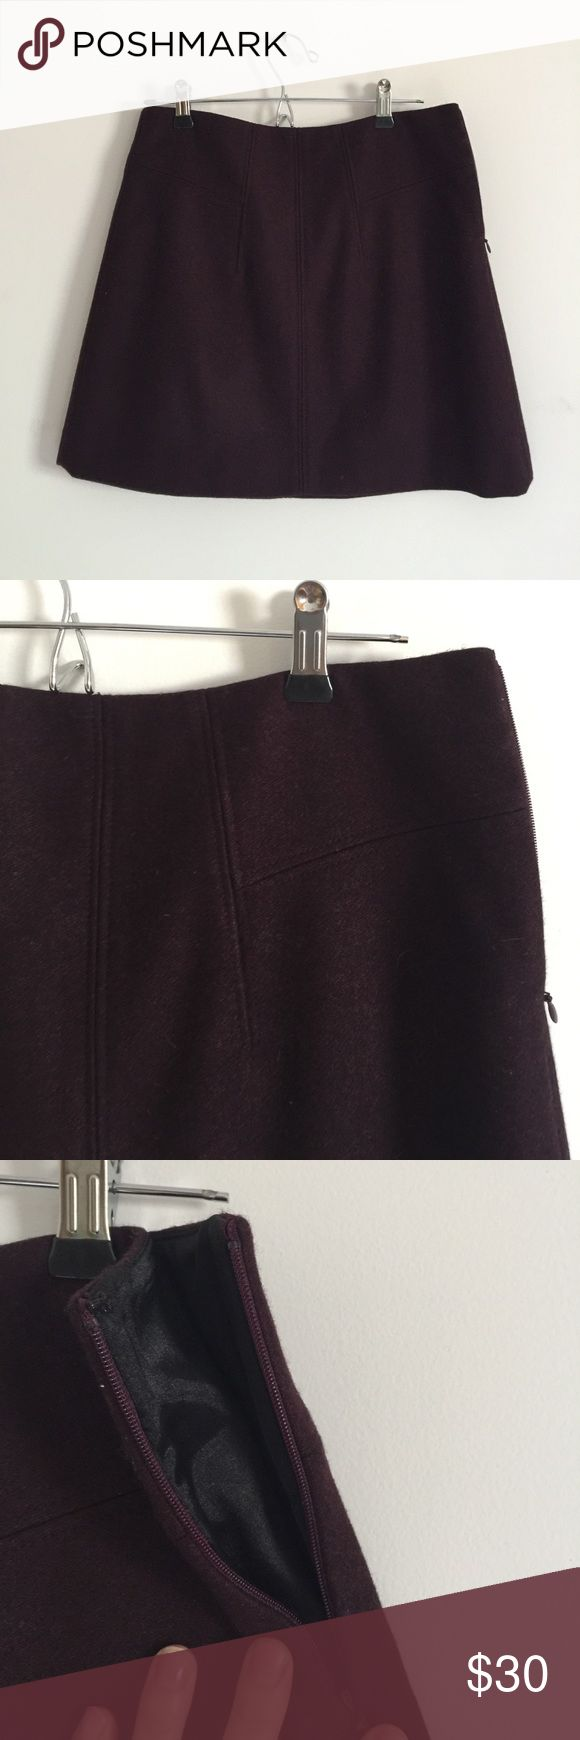 Theory wool skirt Plum purple lined wool skirt. Stitched detail with invisible side zipper. Ask questions! Theory Skirts Mini